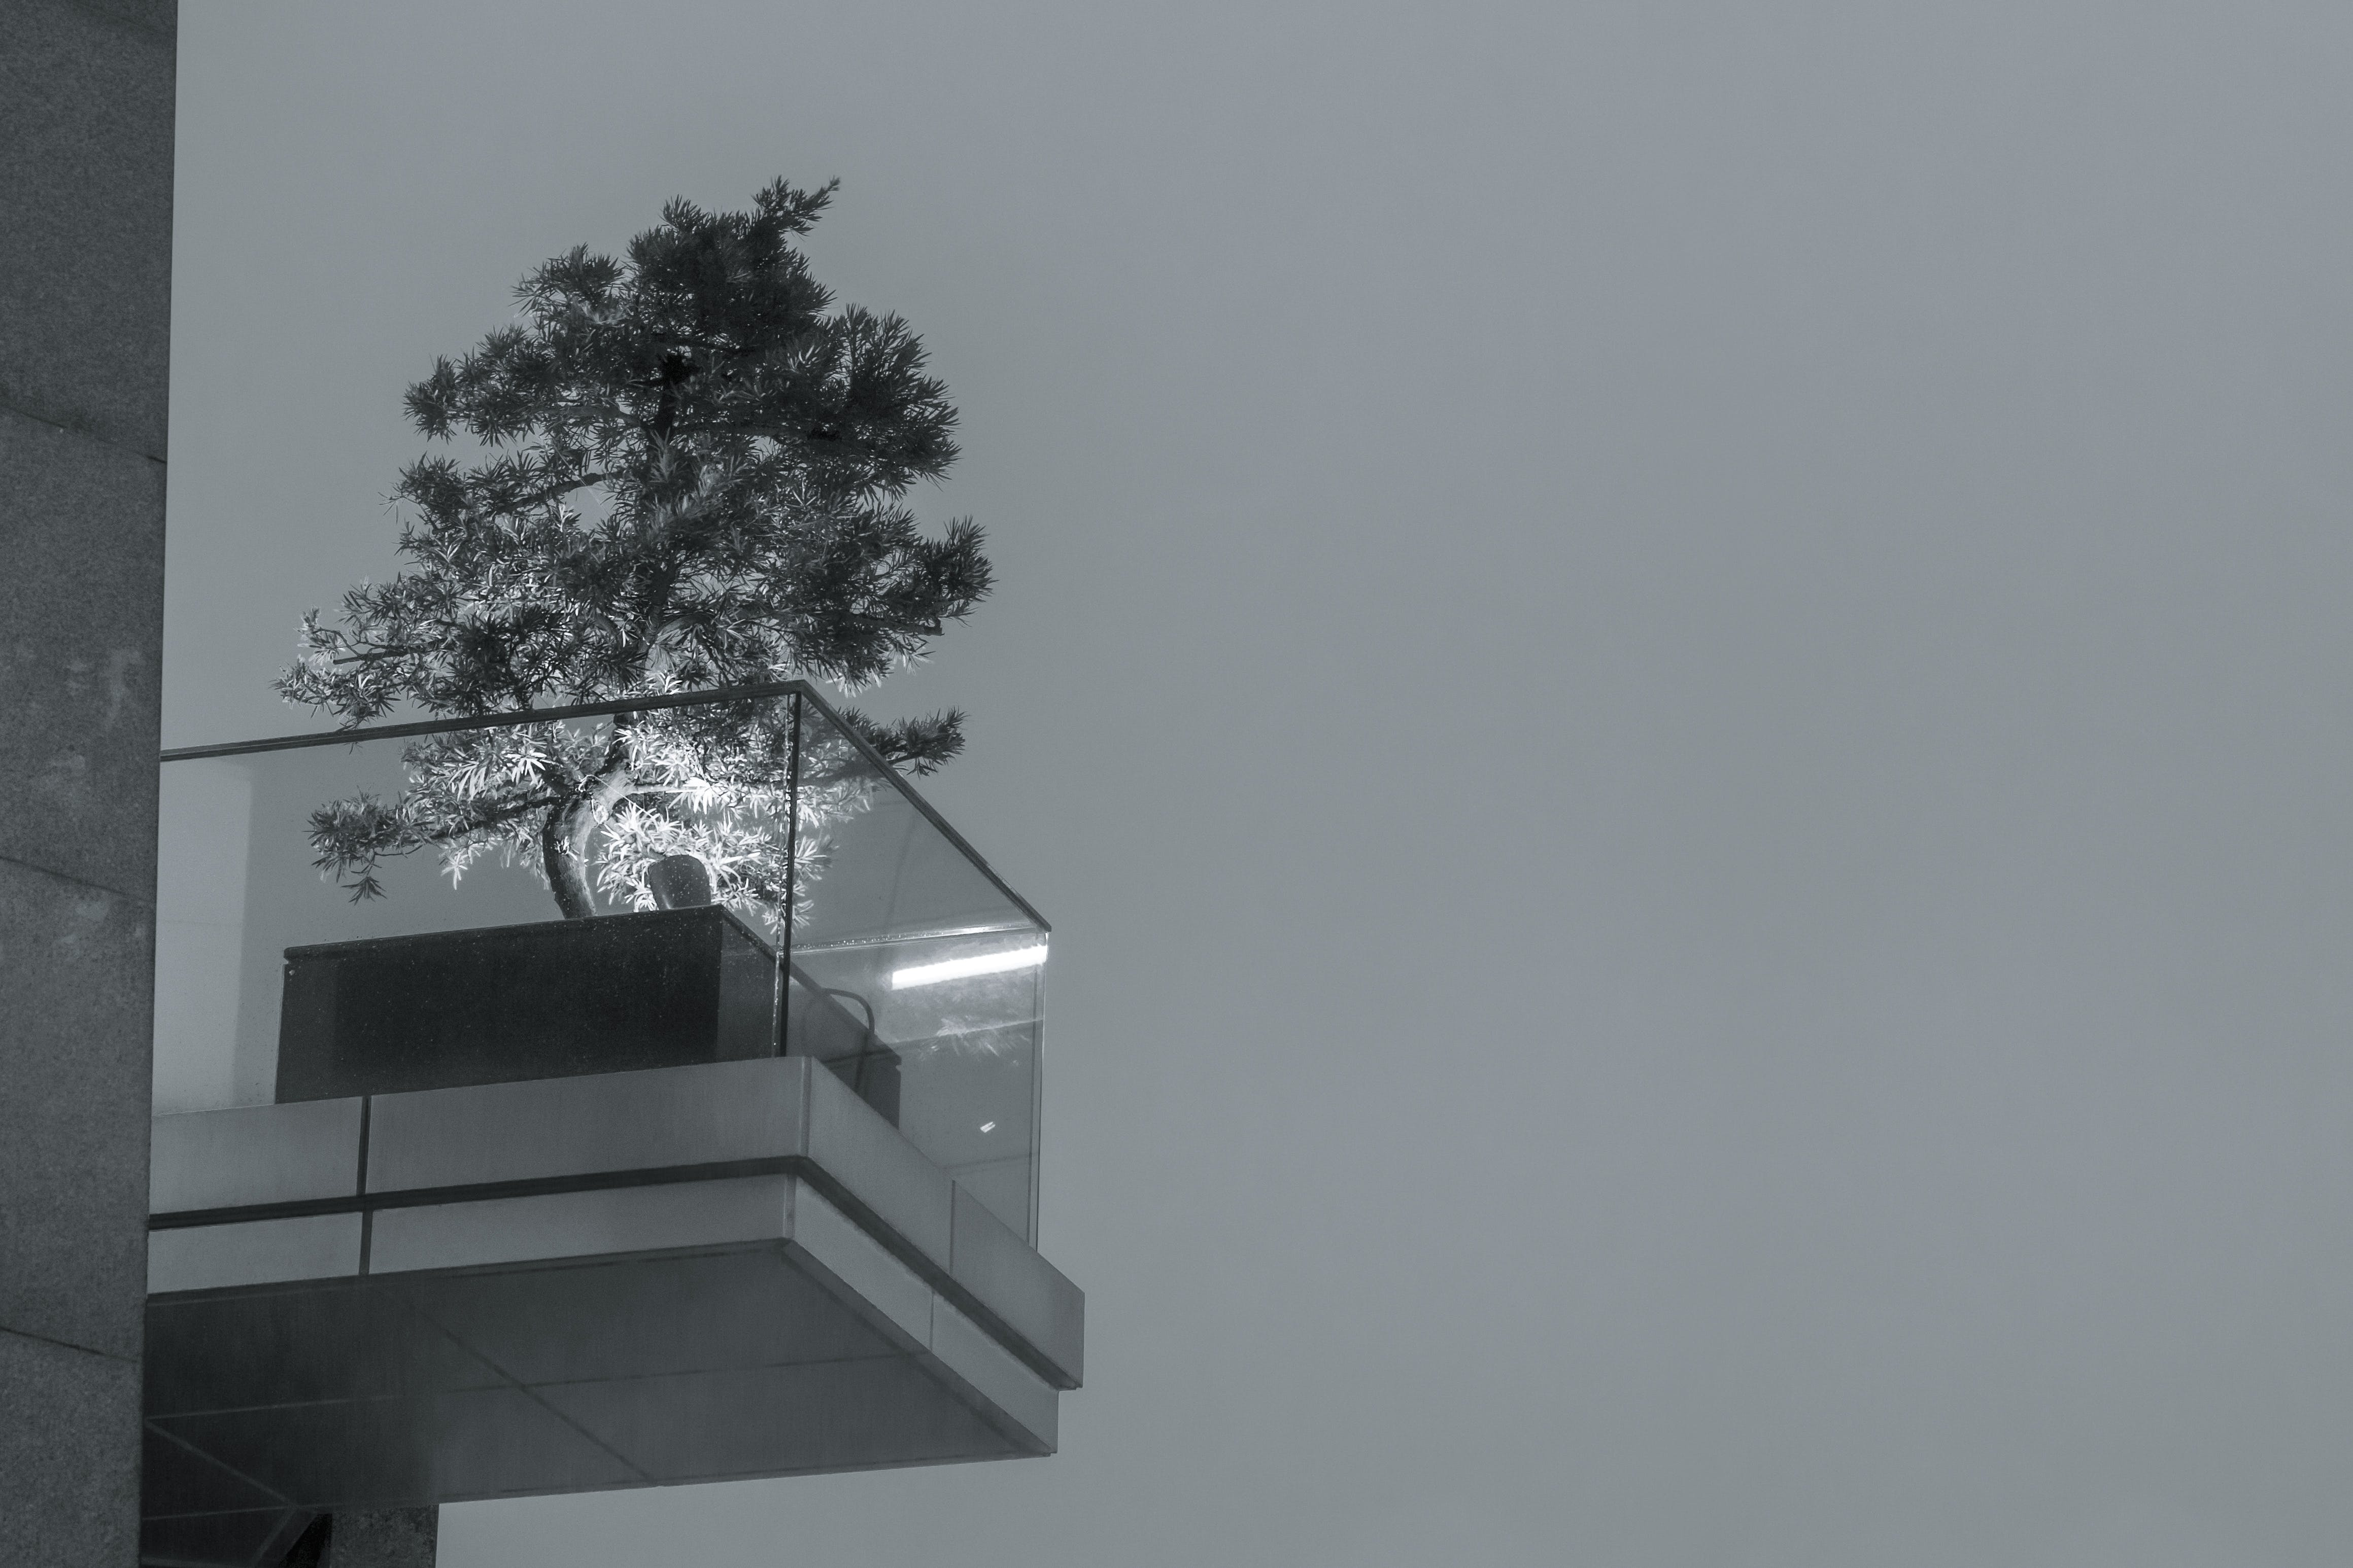 Grayscale Photo of Tree Near Clear Glass Fence